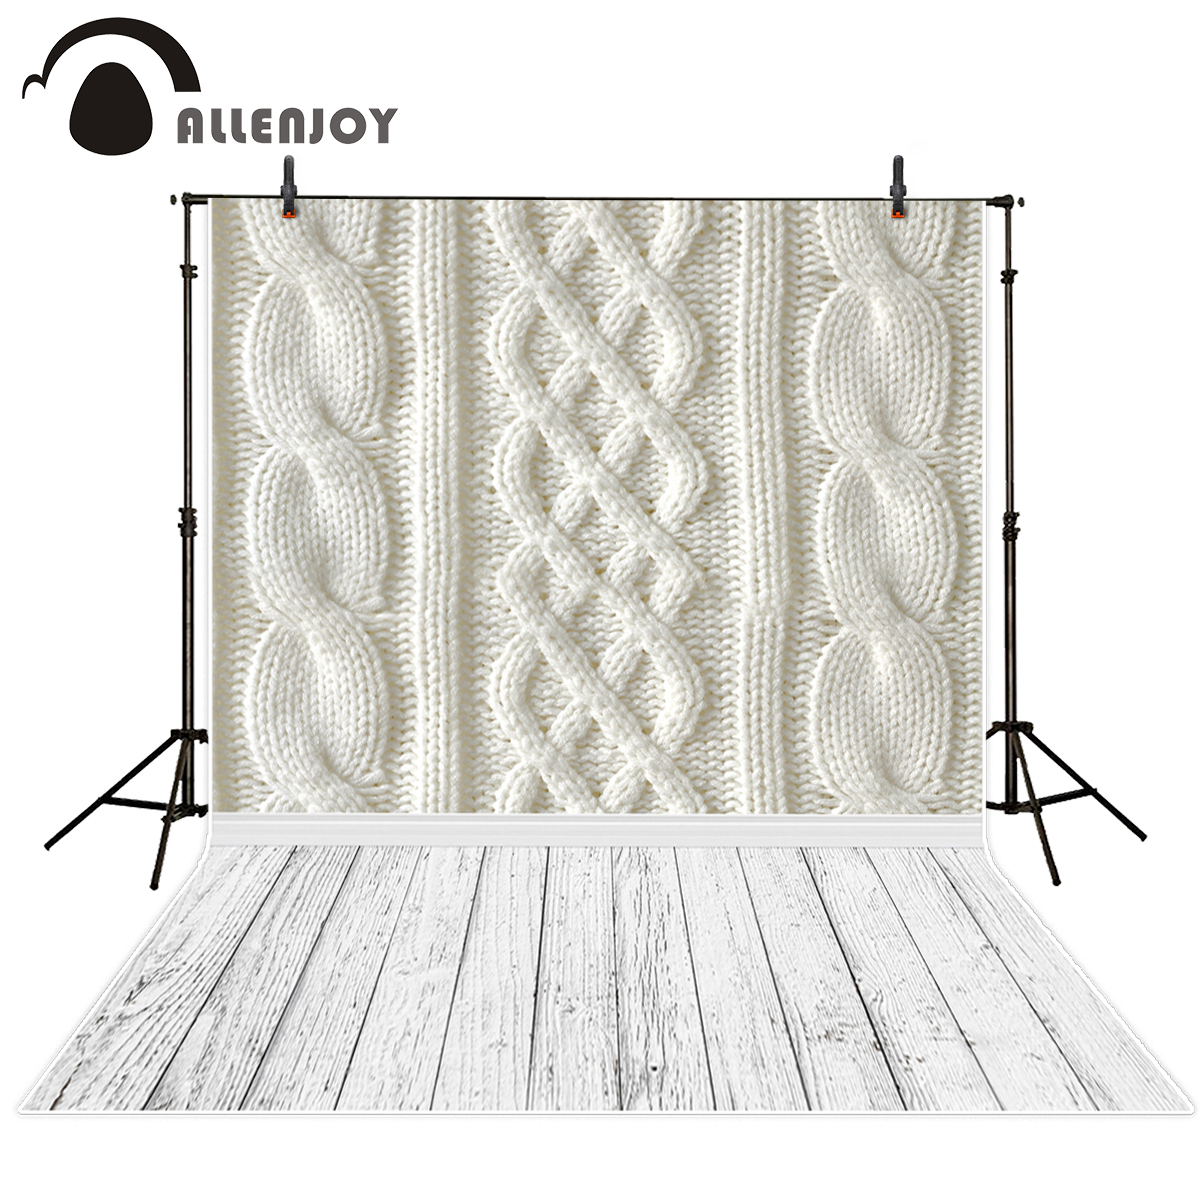 Allenjoy photography backdrops White wool yarn pattern and wood floor backgrounds for photo studio photography backdrop vinyl 5 8ft photo backdrop wood screen floor backdrop backgrounds for photo studio casamento vinyl backdrops for photography m1034